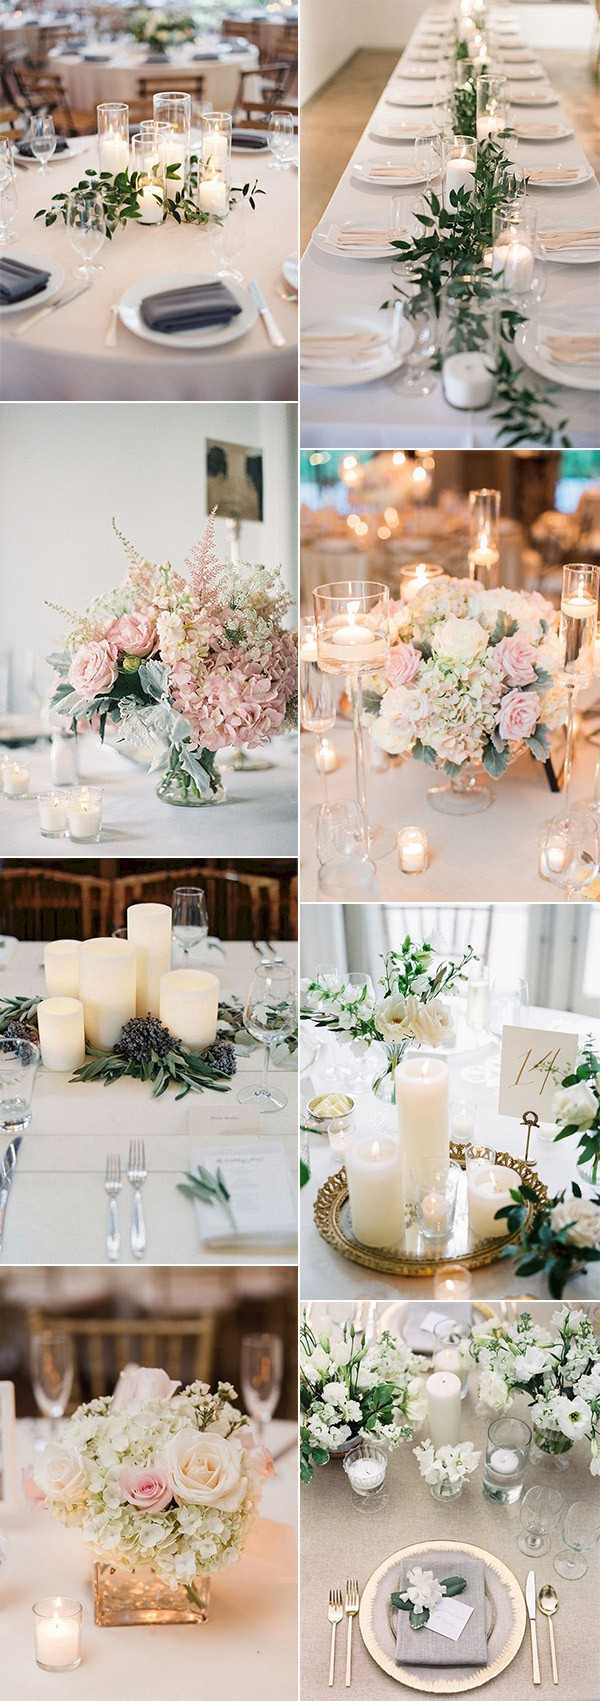 trending elegant wedding centerpiece ideas for 2018 trends